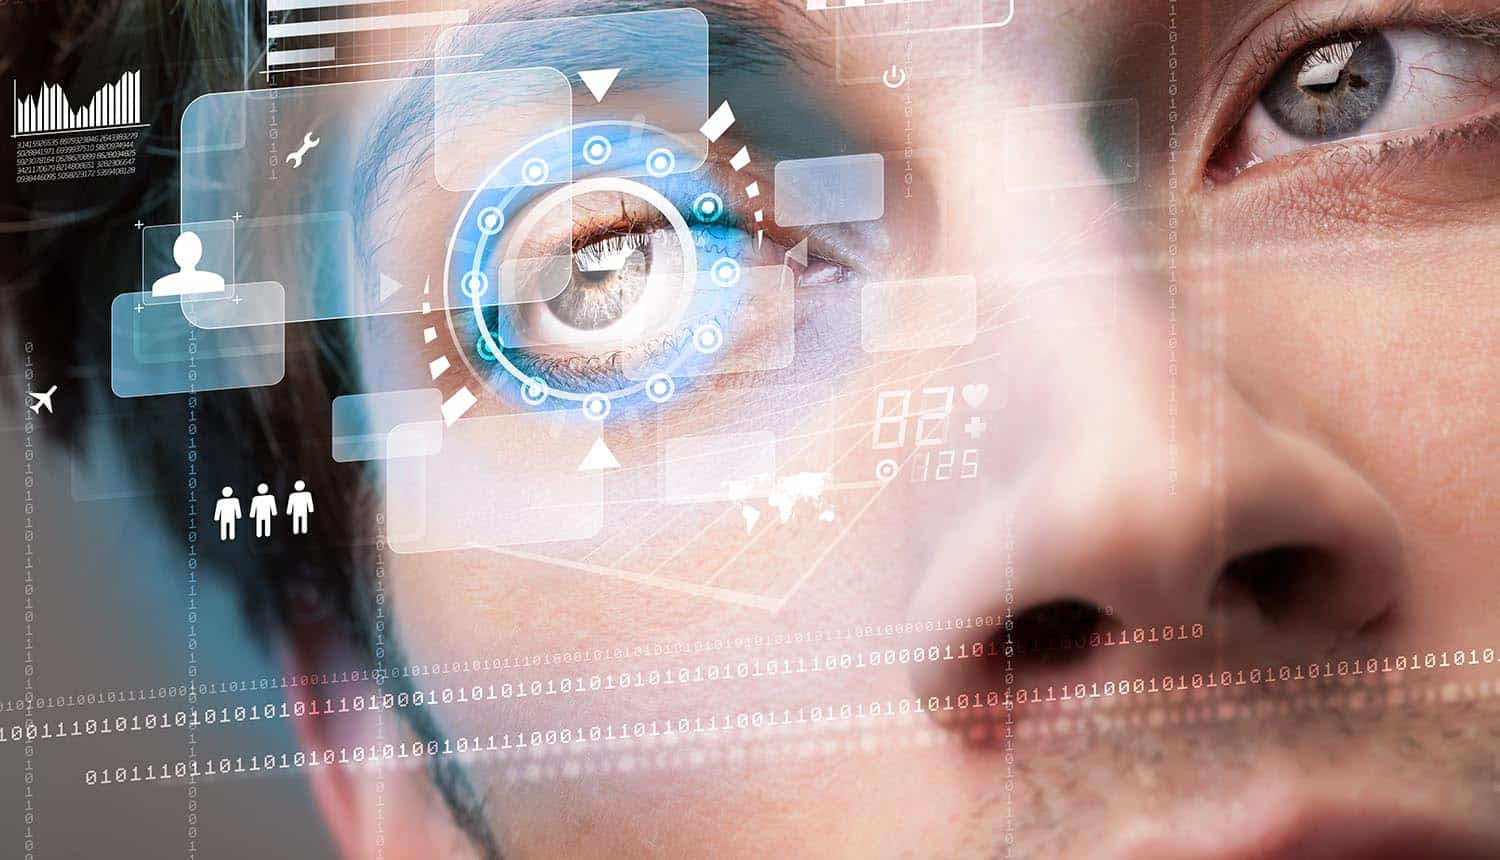 Man with technology virtual icon over his eye showing the use of blockchain-based digital identity technology to provide digital guardianship